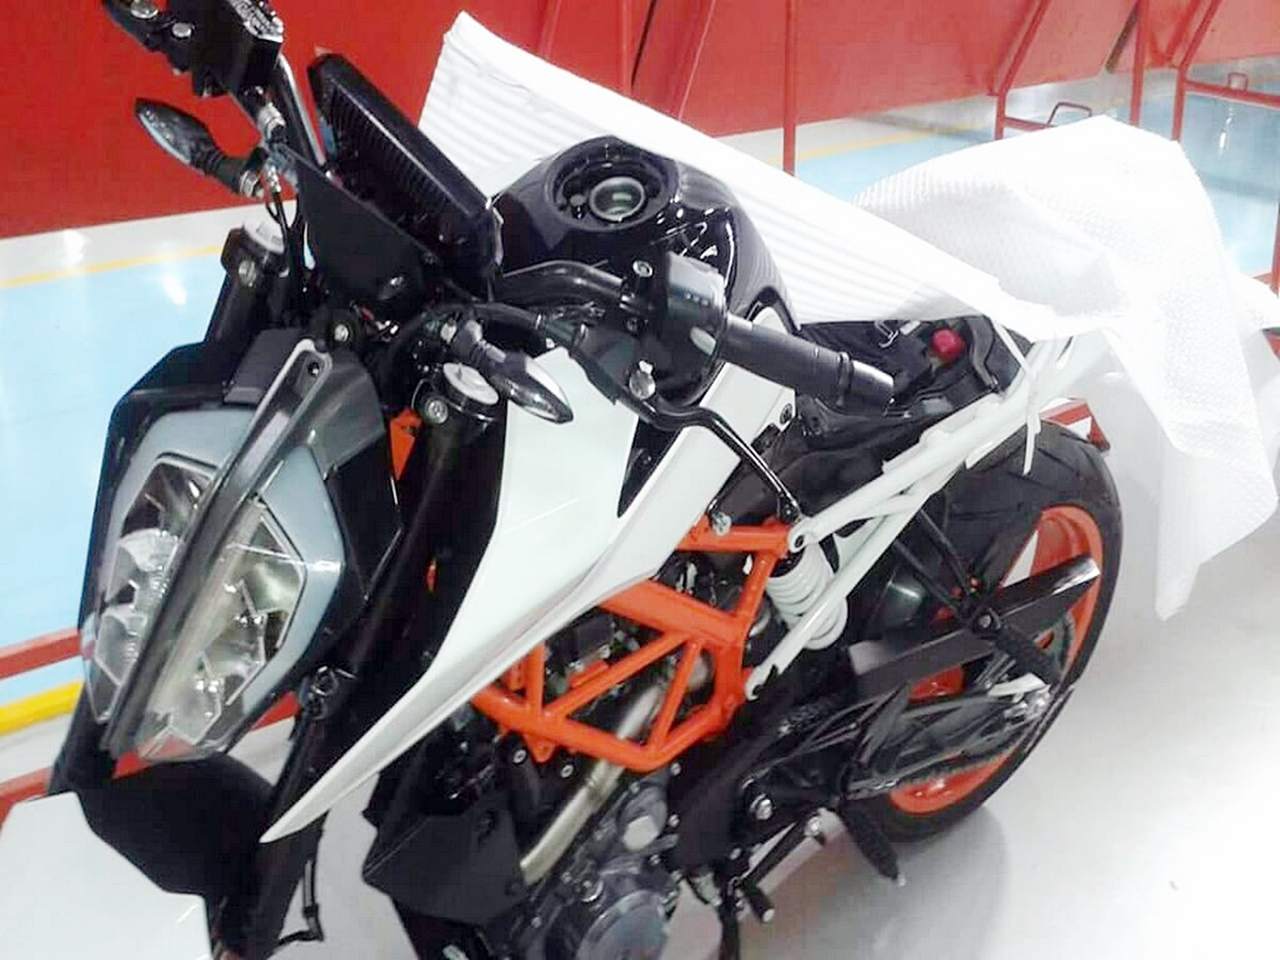 2017 KTM Duke 390 spotted   looks radically different 1280x960